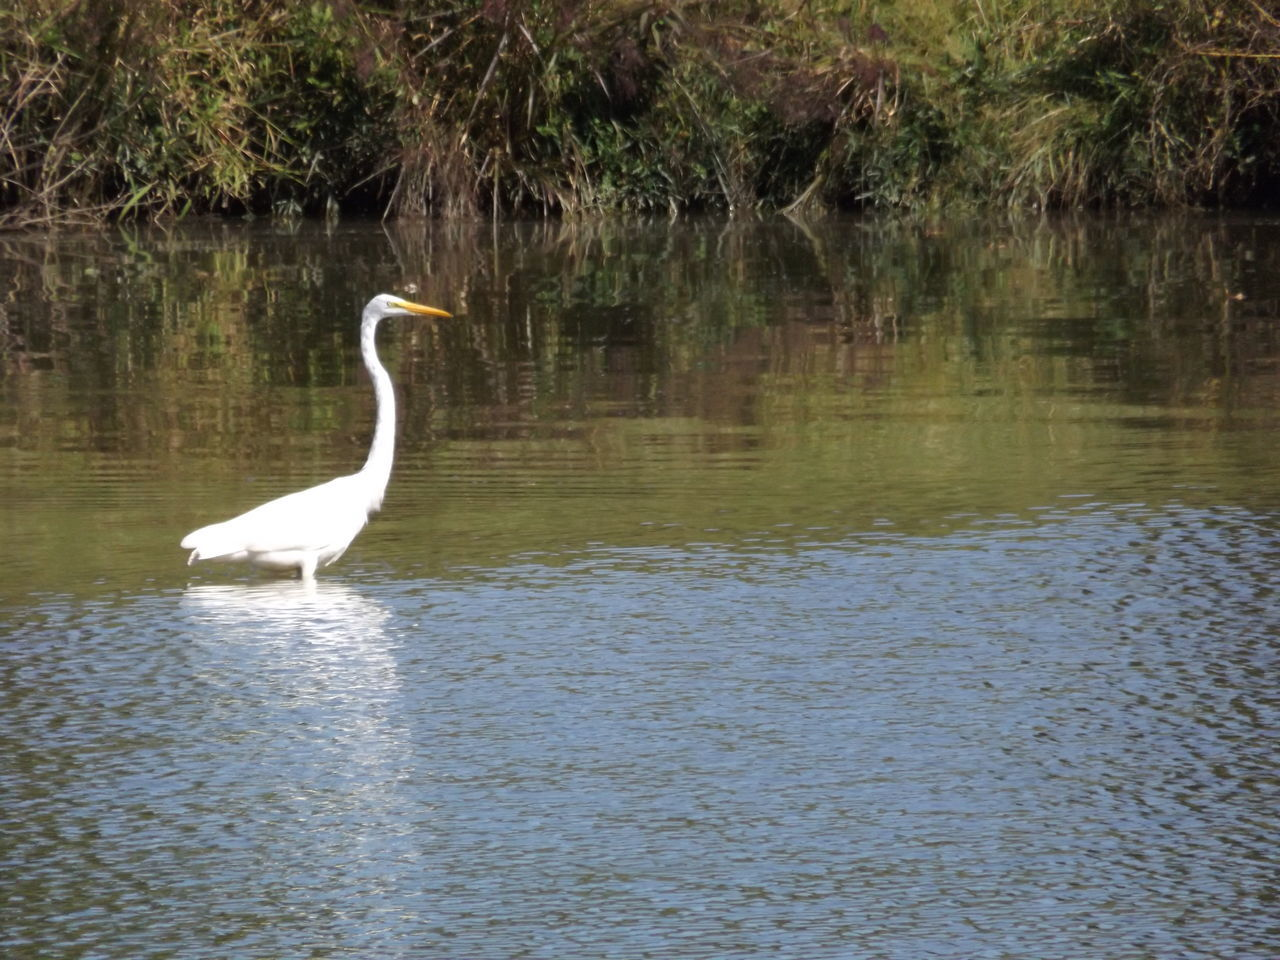 animals in the wild, animal themes, one animal, bird, animal wildlife, lake, water, reflection, white color, great egret, heron, nature, egret, day, no people, outdoors, gray heron, beauty in nature, swan